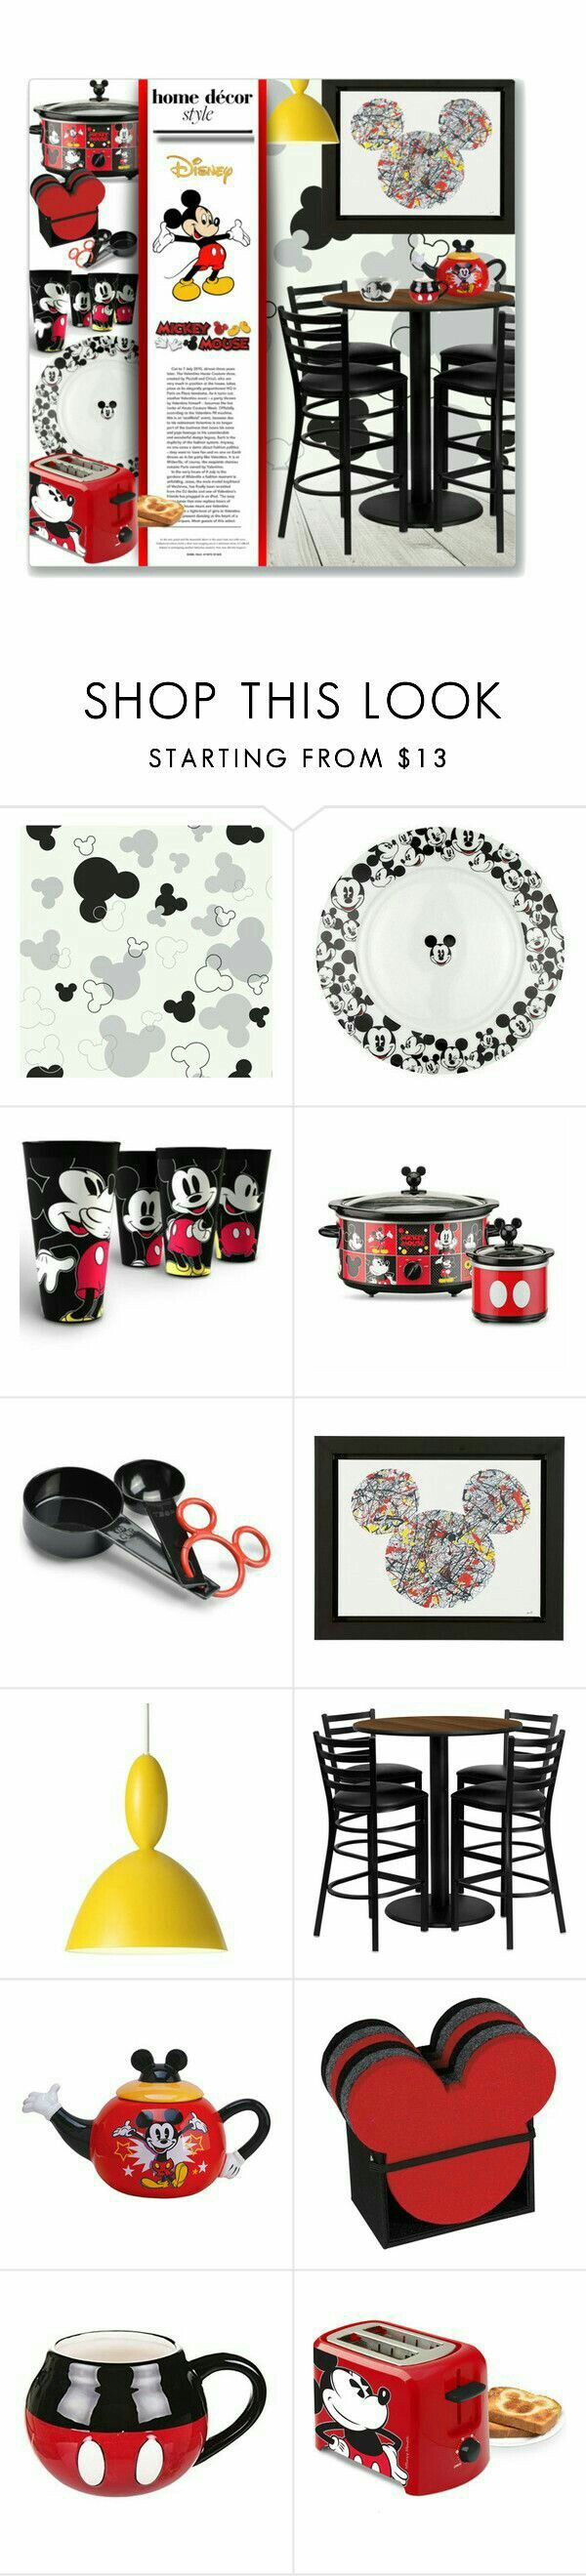 85 best Disney images on Pinterest   Auction, Old fashioned toys and ...